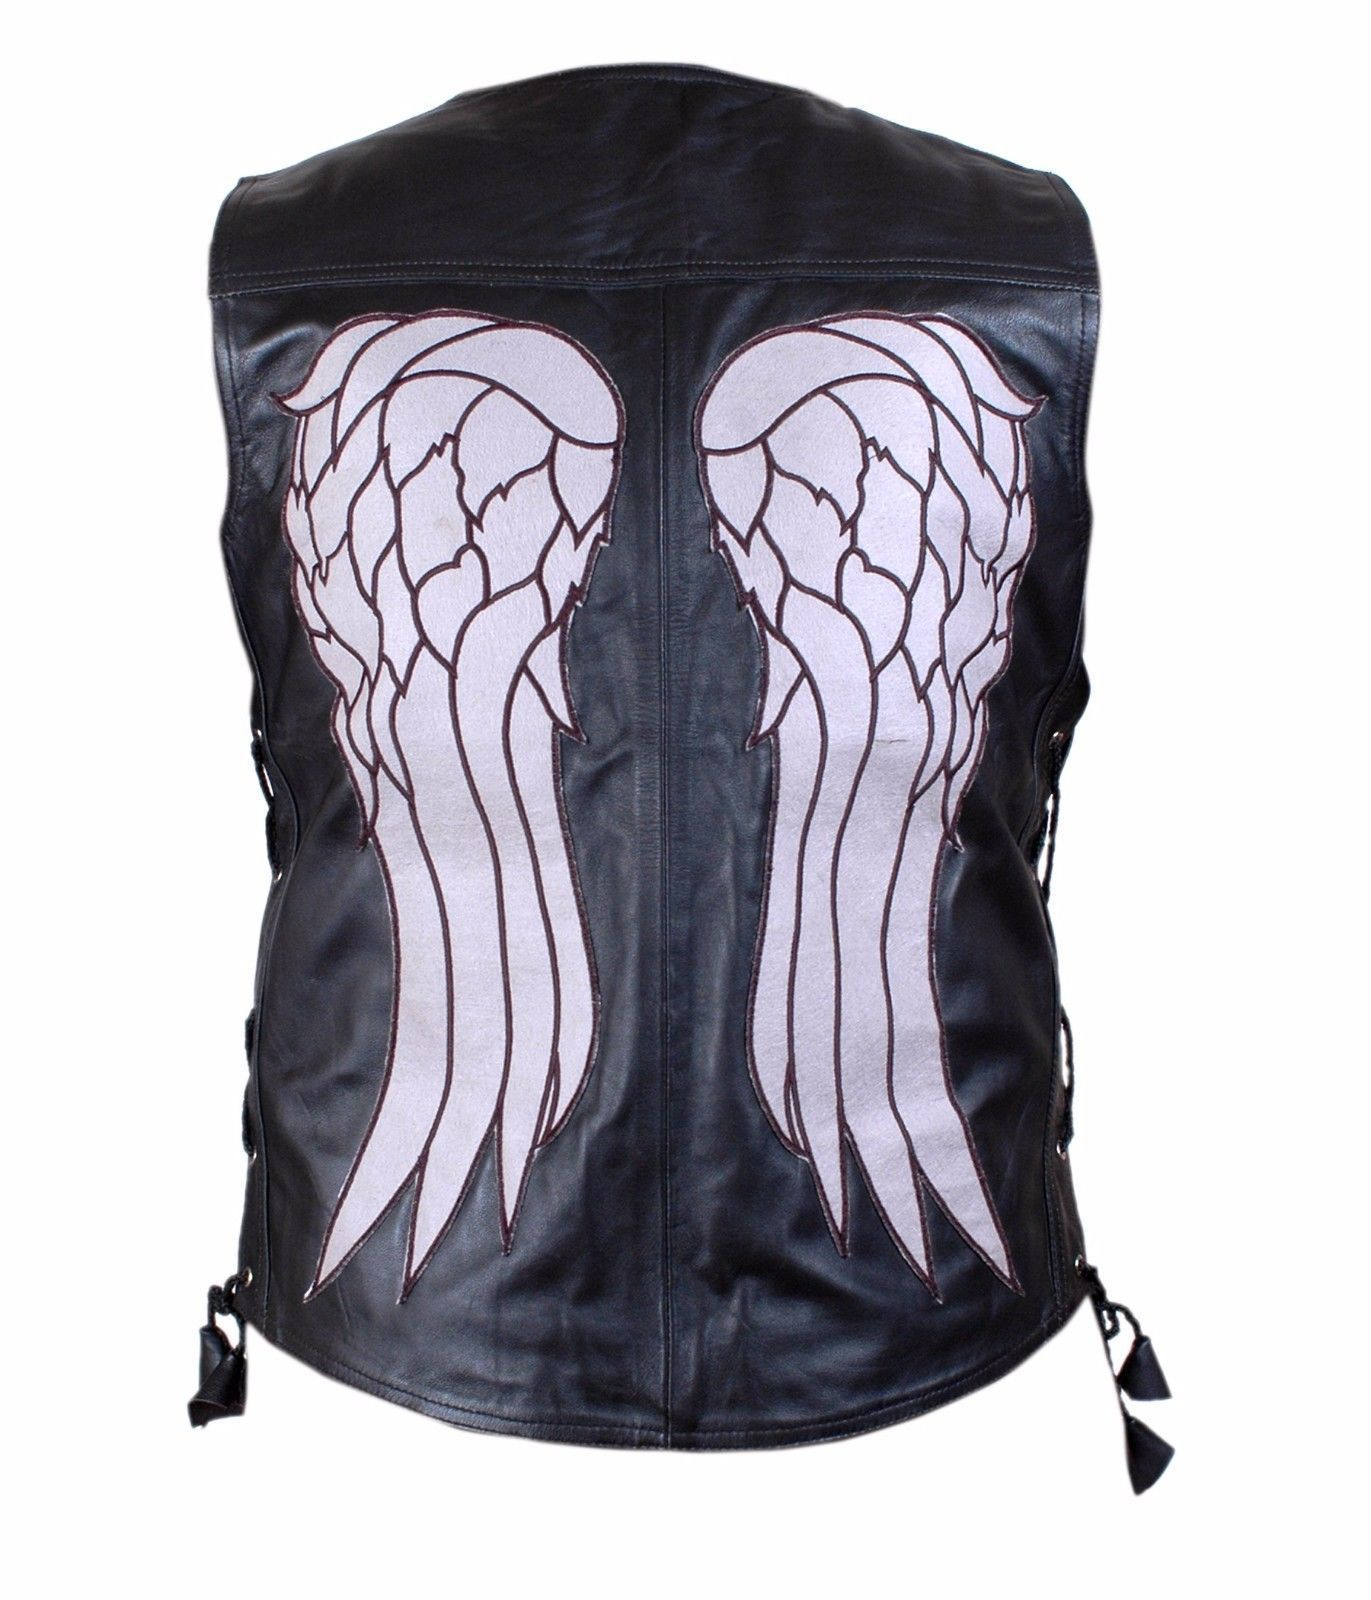 THE WALKING DEAD GOVERNOR DARYL DIXON ANGEL WINGS LEATHER VEST JACKET BNWT